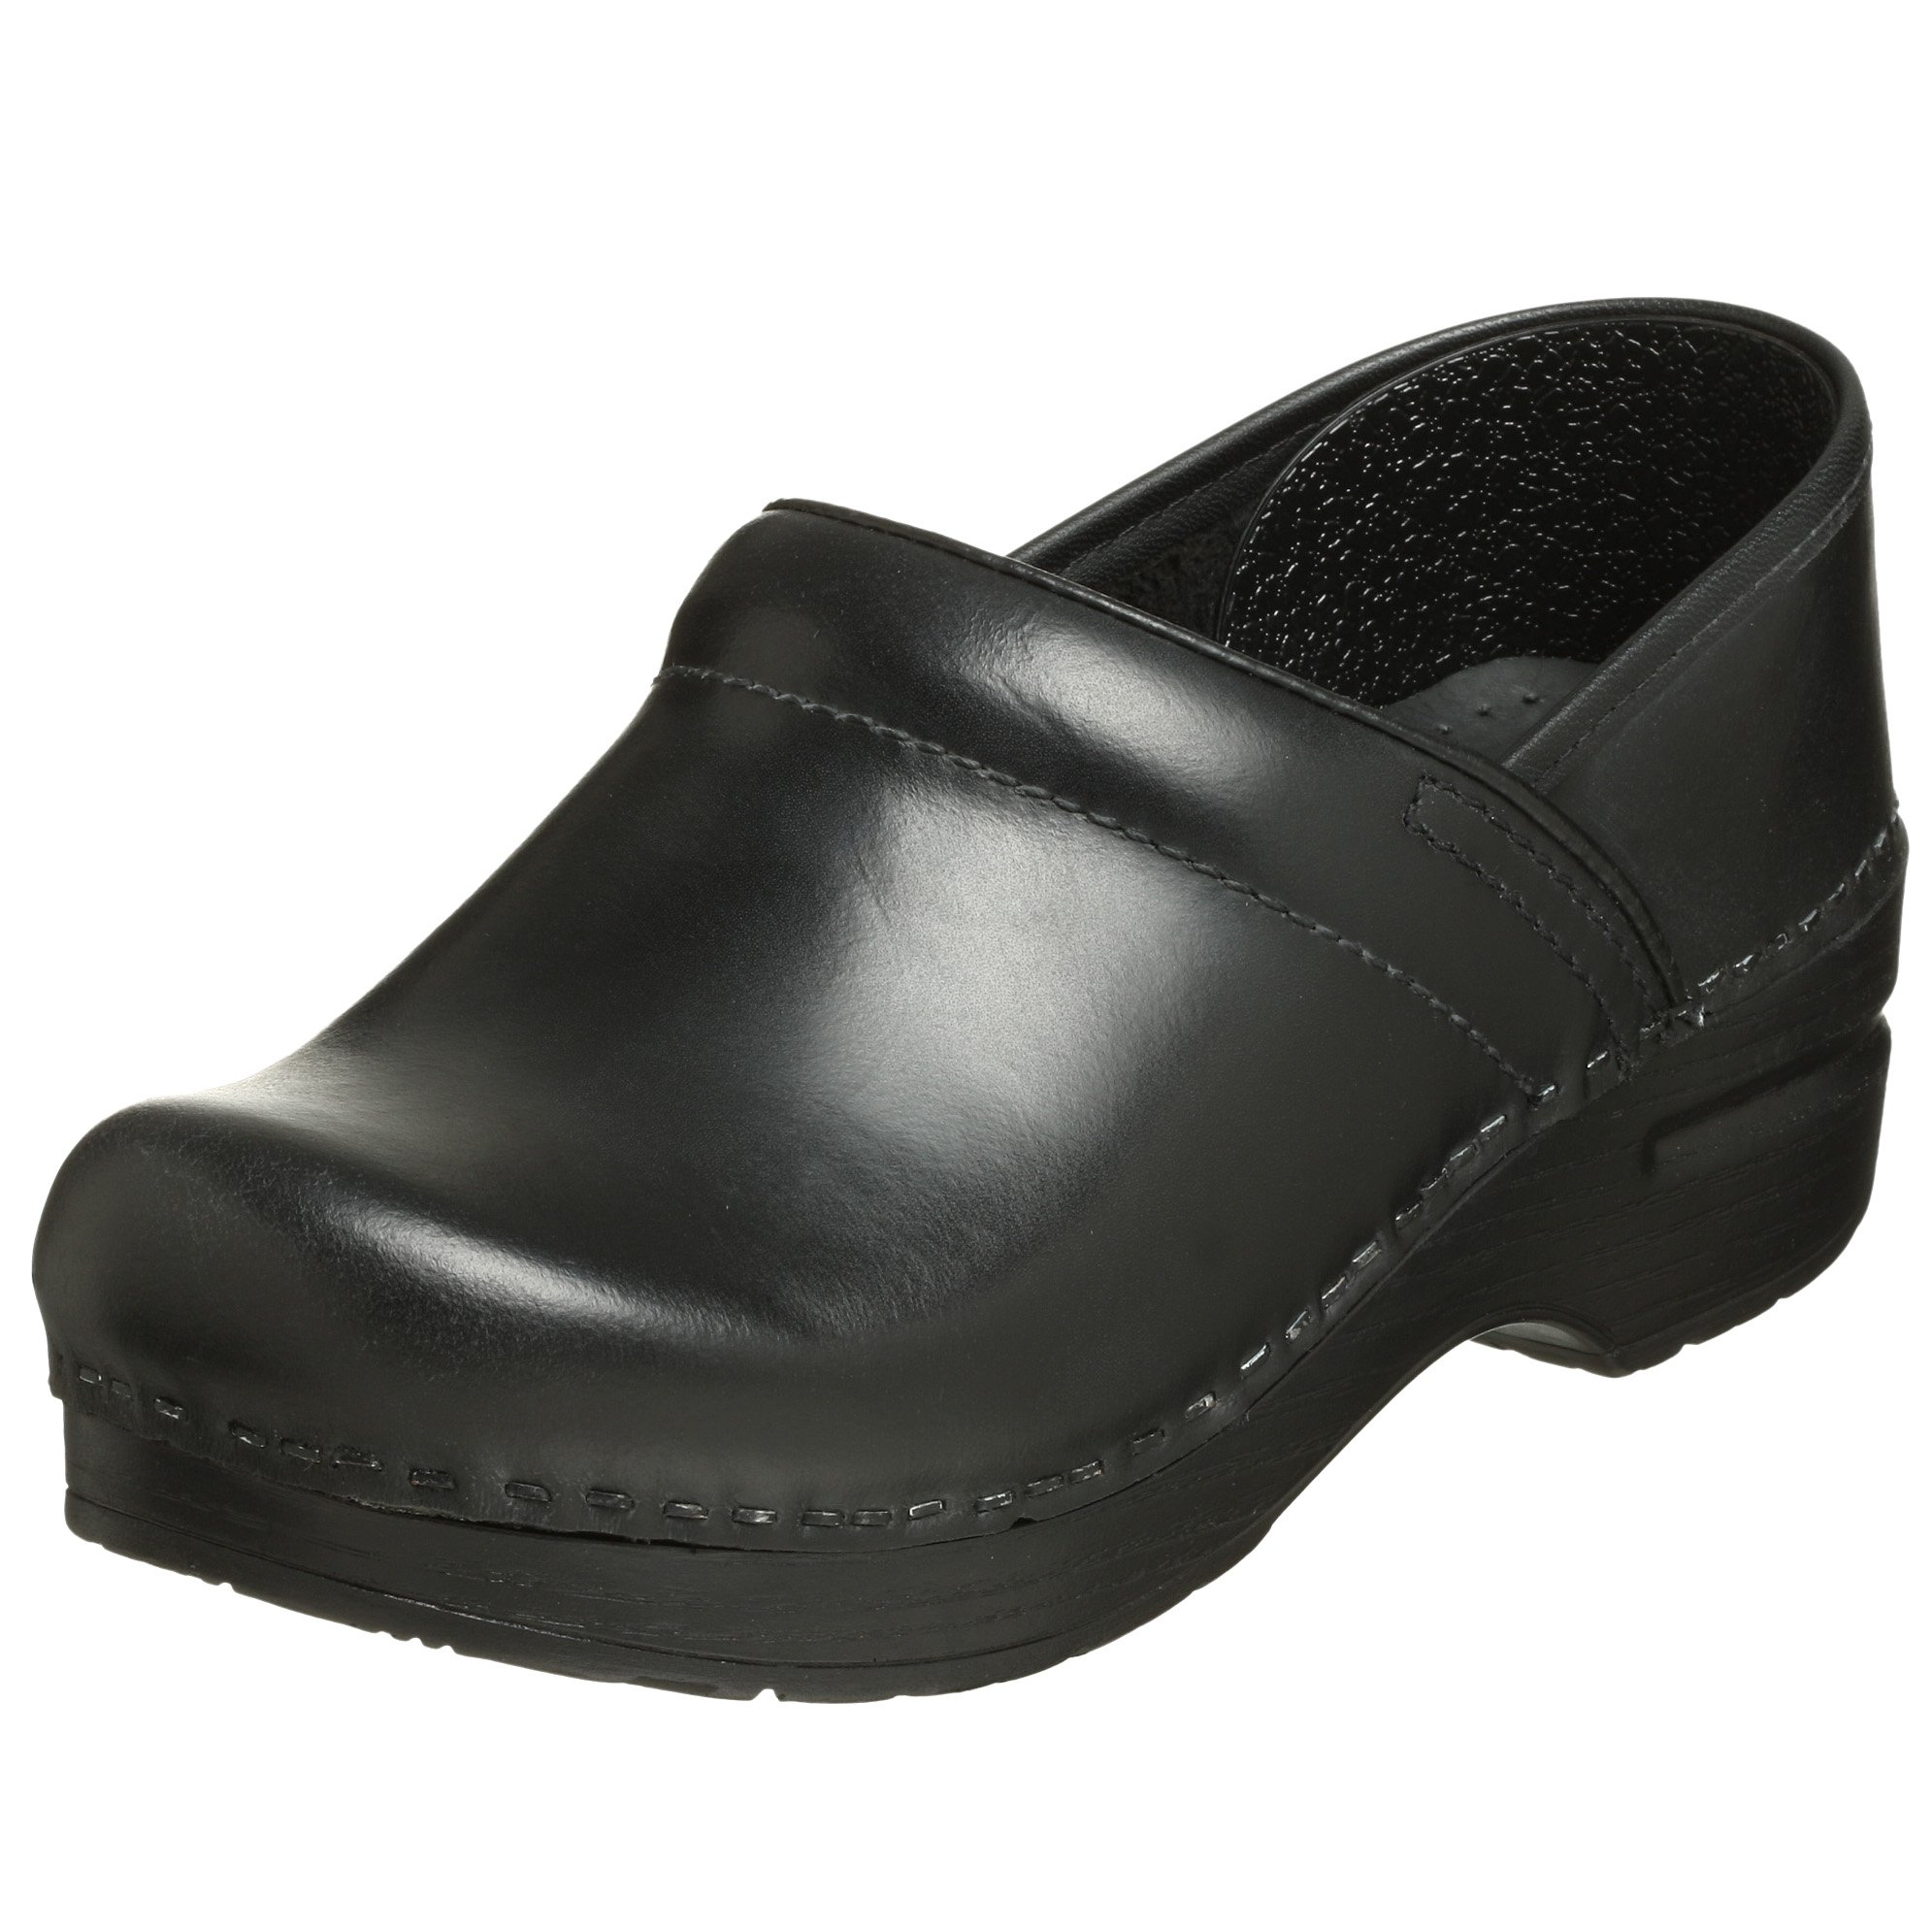 Dansko Women's Narrow Pro Clog,Black,40 N EU / 9.5-10 2A(N) US